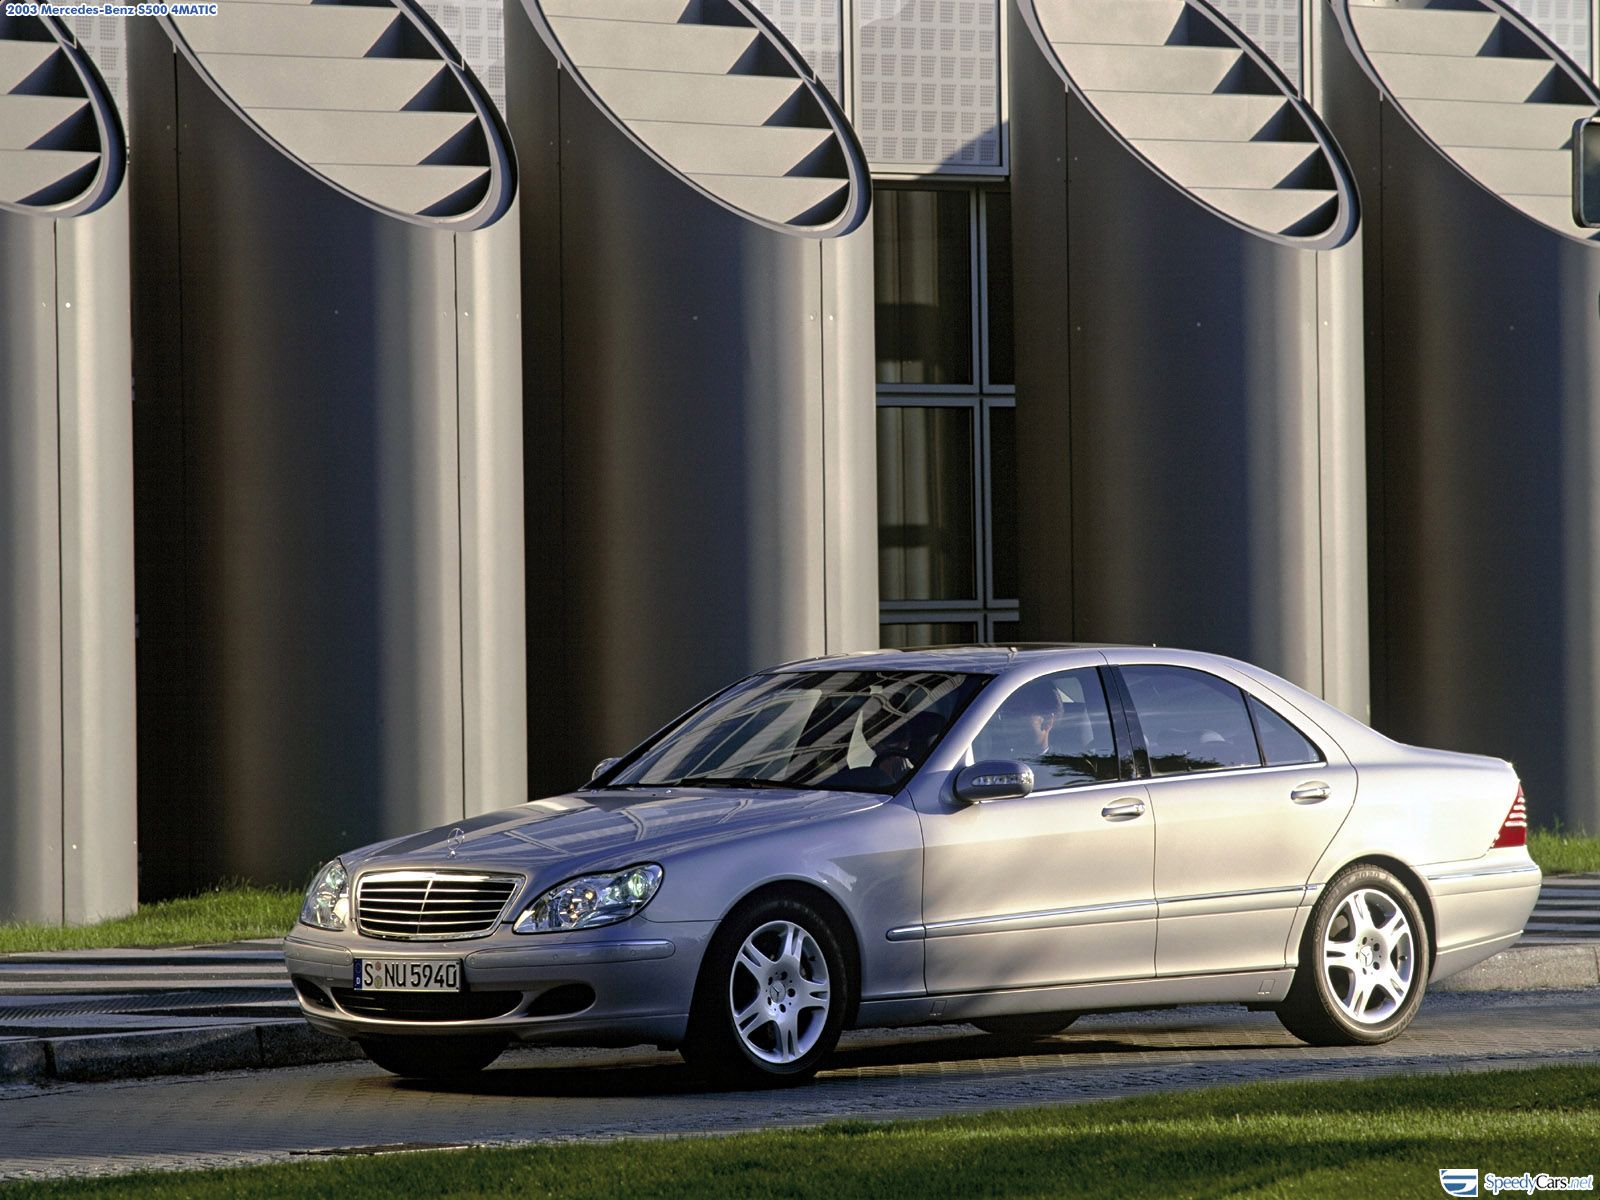 mercedes benz s class w220 picture 11216 mercedes benz photo gallery. Black Bedroom Furniture Sets. Home Design Ideas